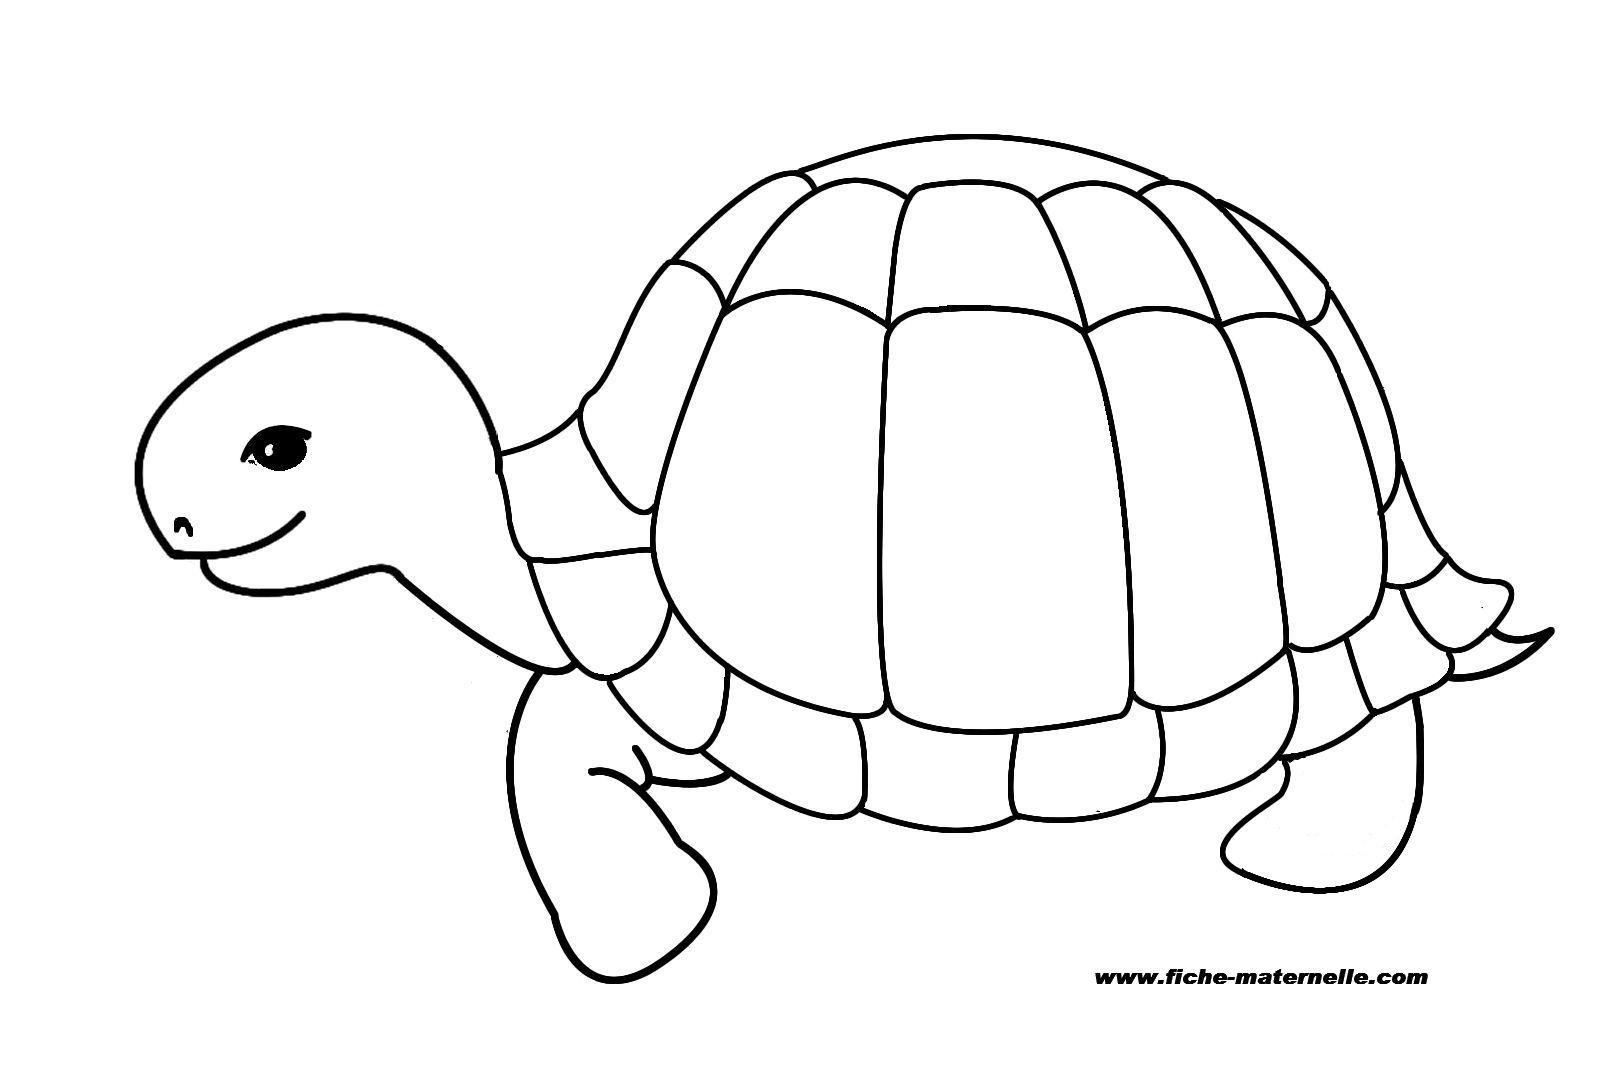 Coloring pages pinterest - Coloriage tortue ...